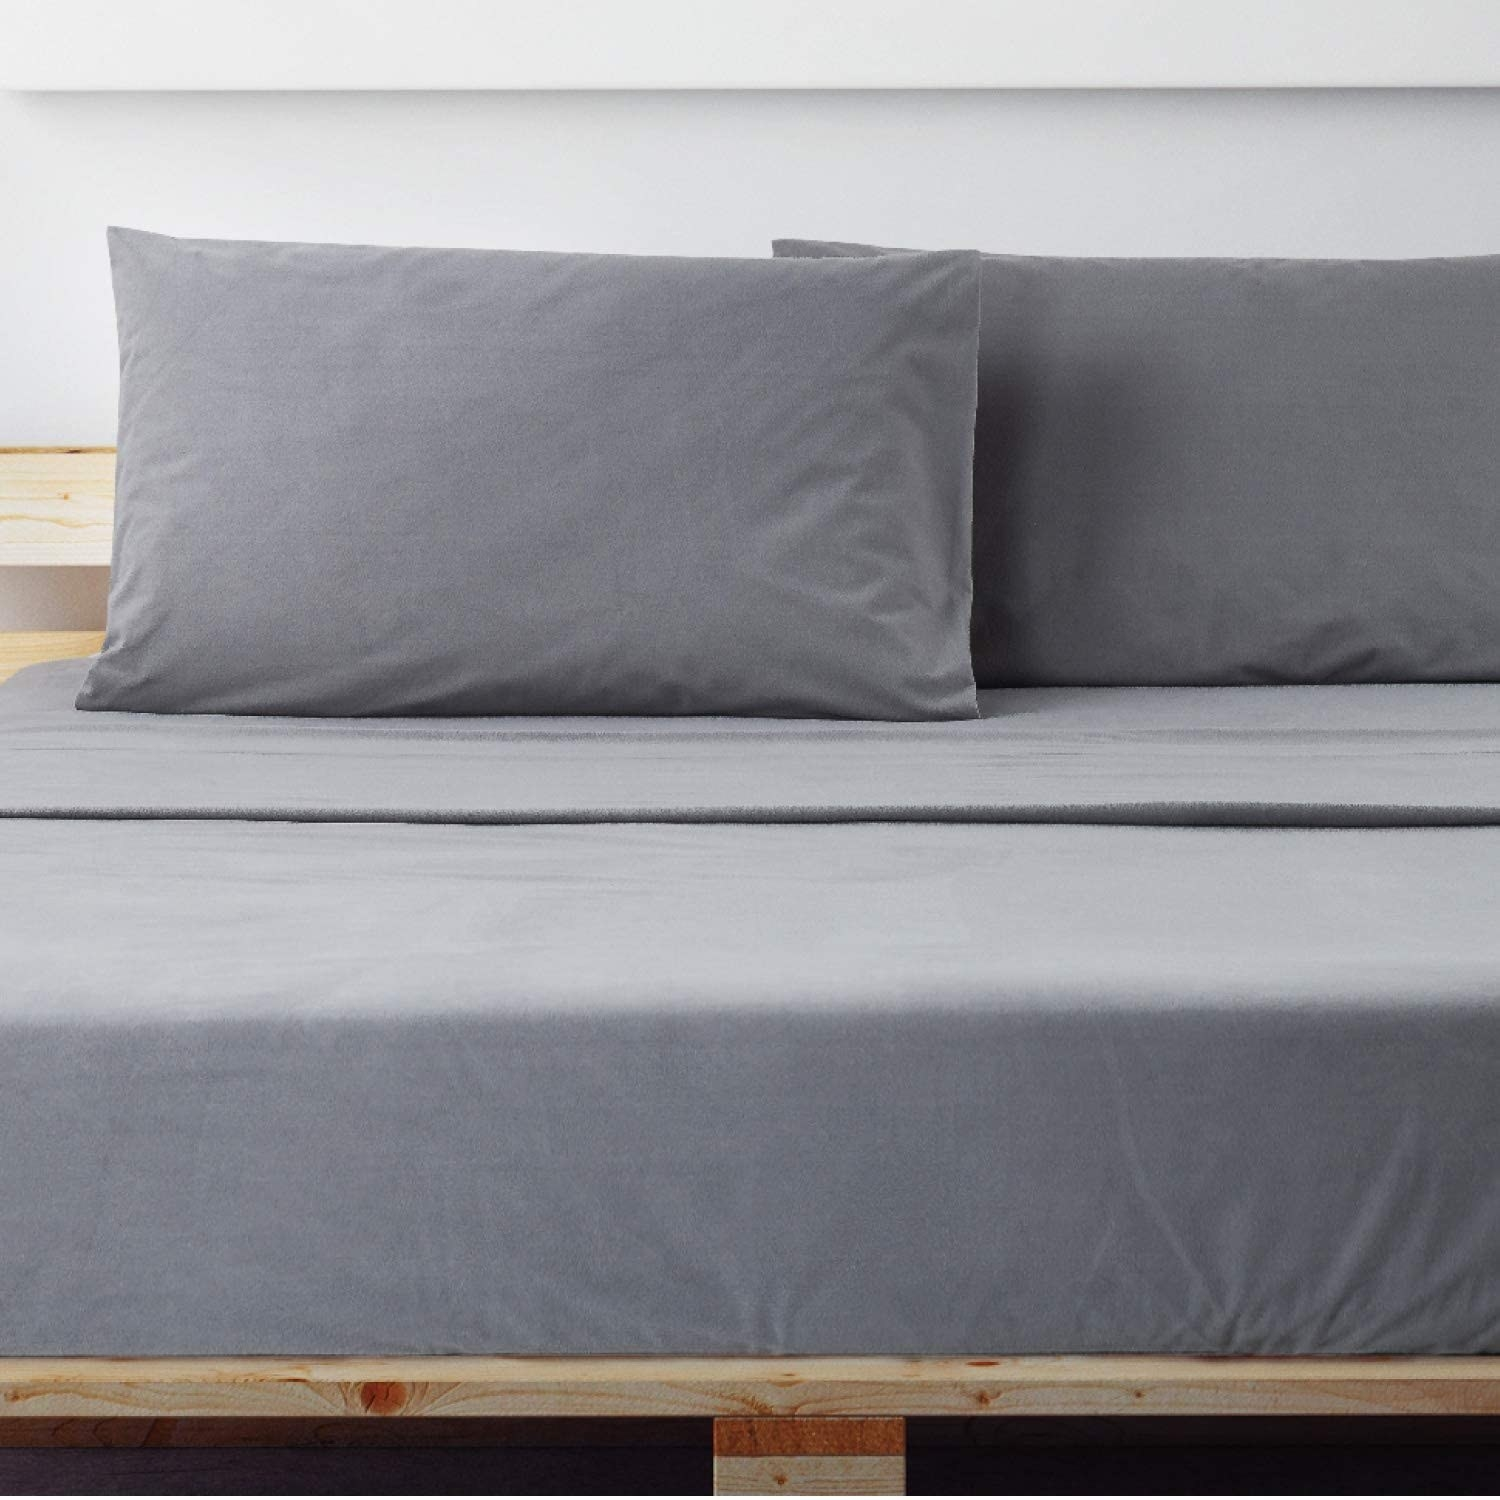 A pair of flannel sheets on a bed